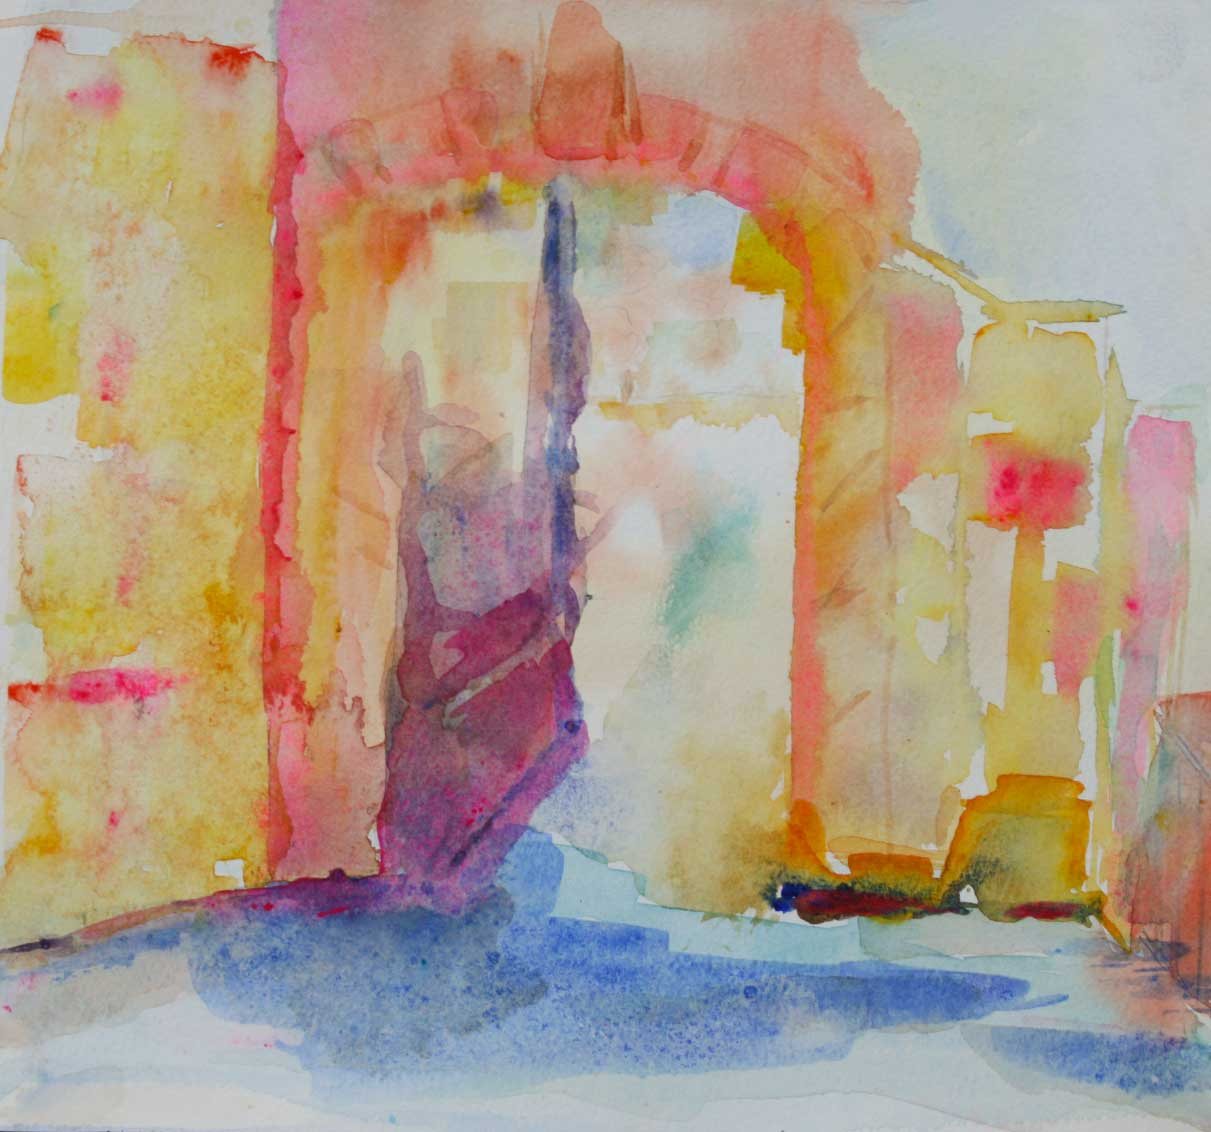 'Doorway at Béduer' by Brenda 'colour' Wolf. Watercolour.